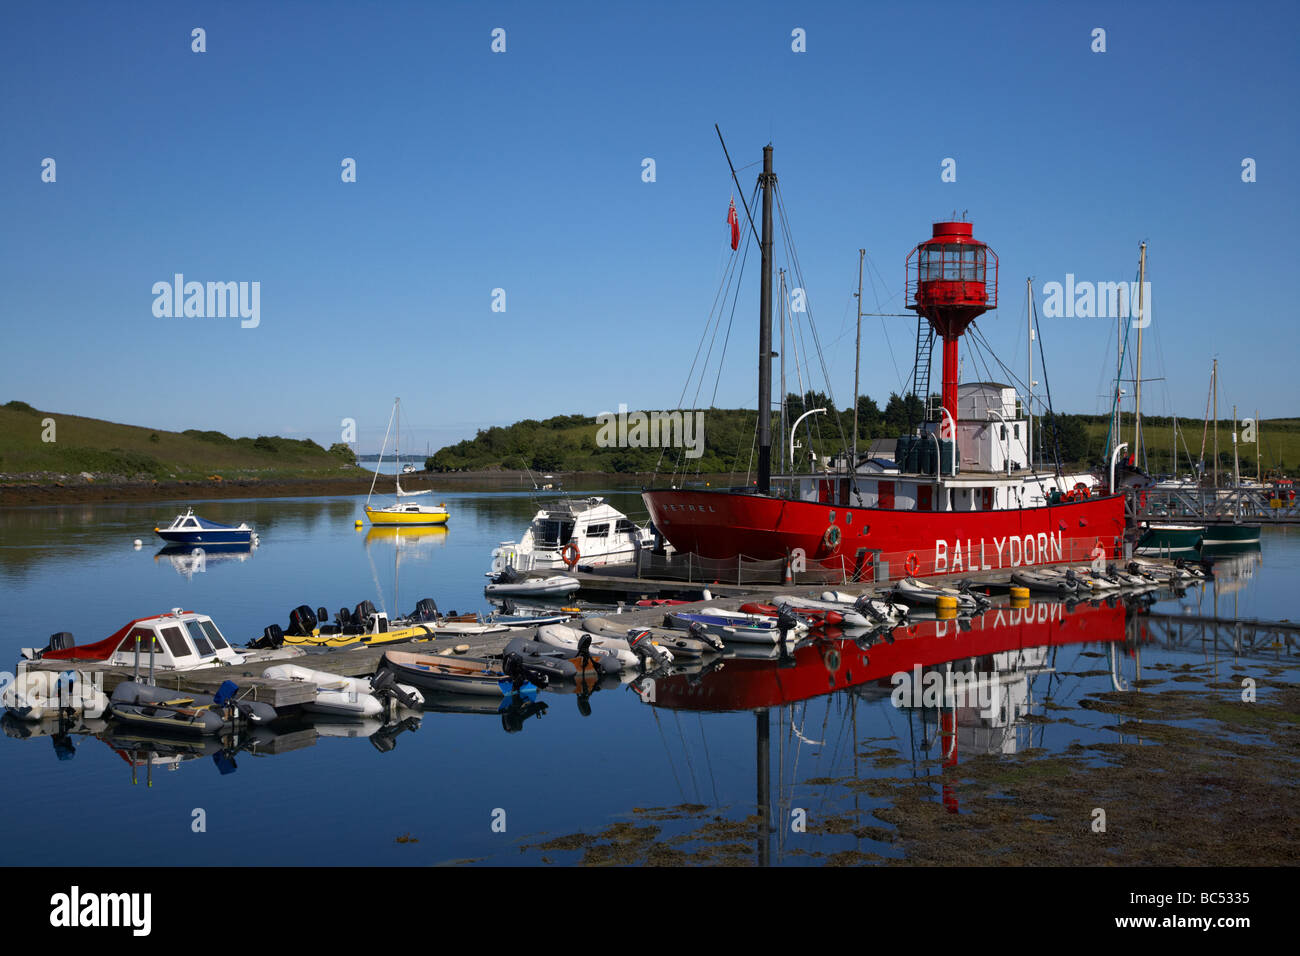 ballydorn lightship formerly known as the petrel now clubhouse for the local down cruising yacht club killinchy - Stock Image